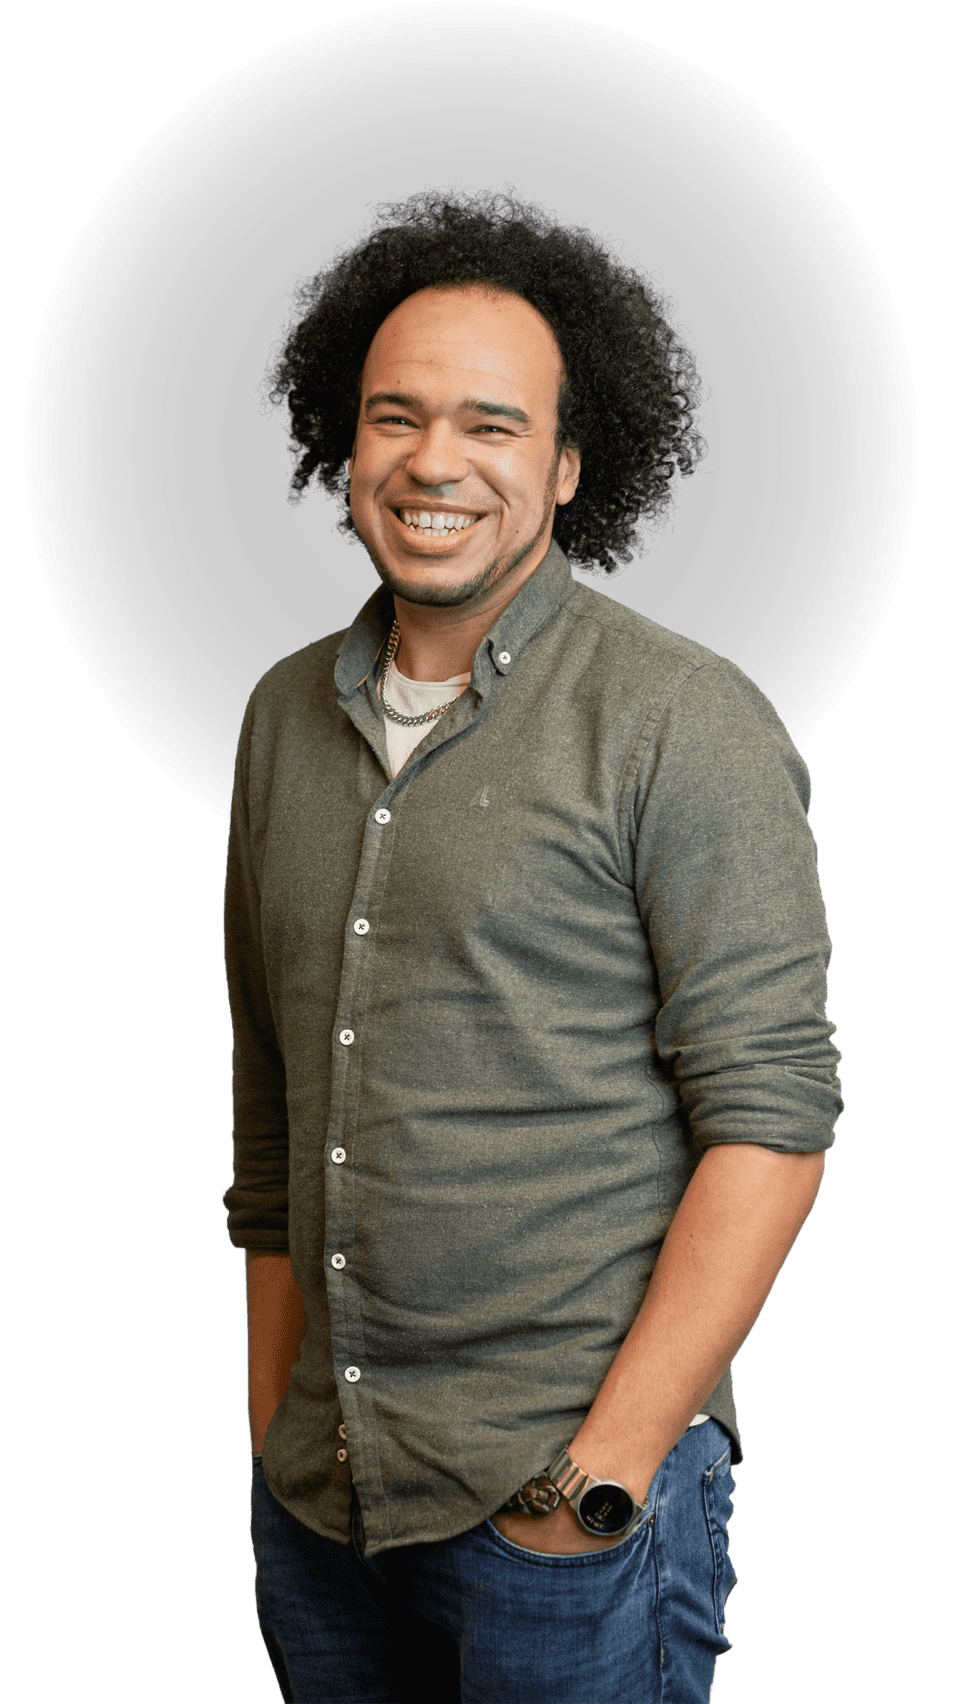 Standing portrait of Kyle Welsby smiling with iconic curly hair